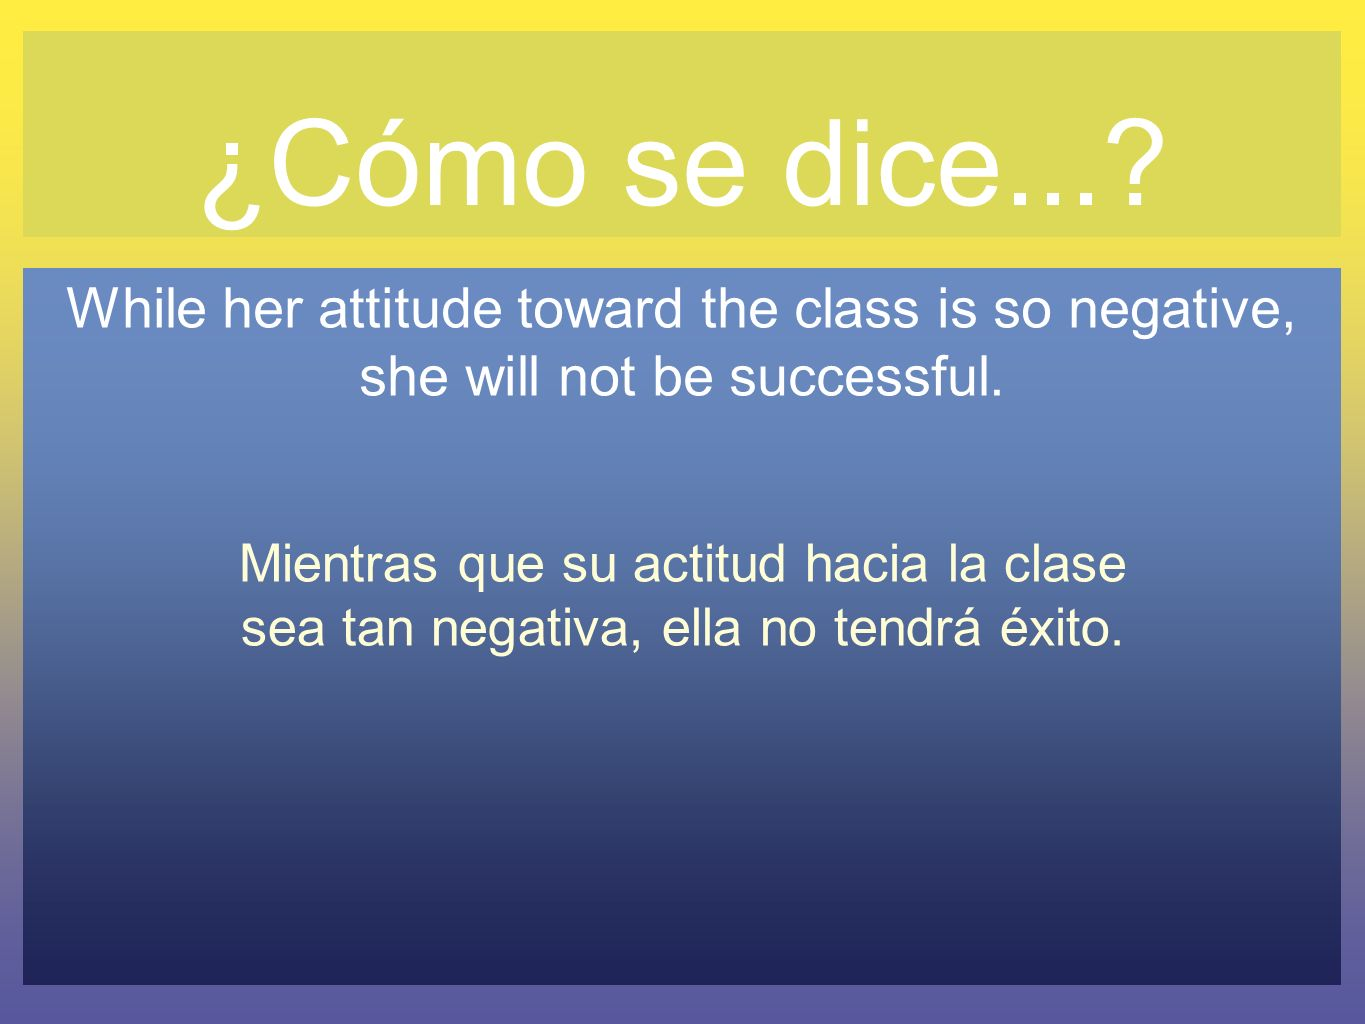 ¿Cómo se dice... While her attitude toward the class is so negative, she will not be successful.